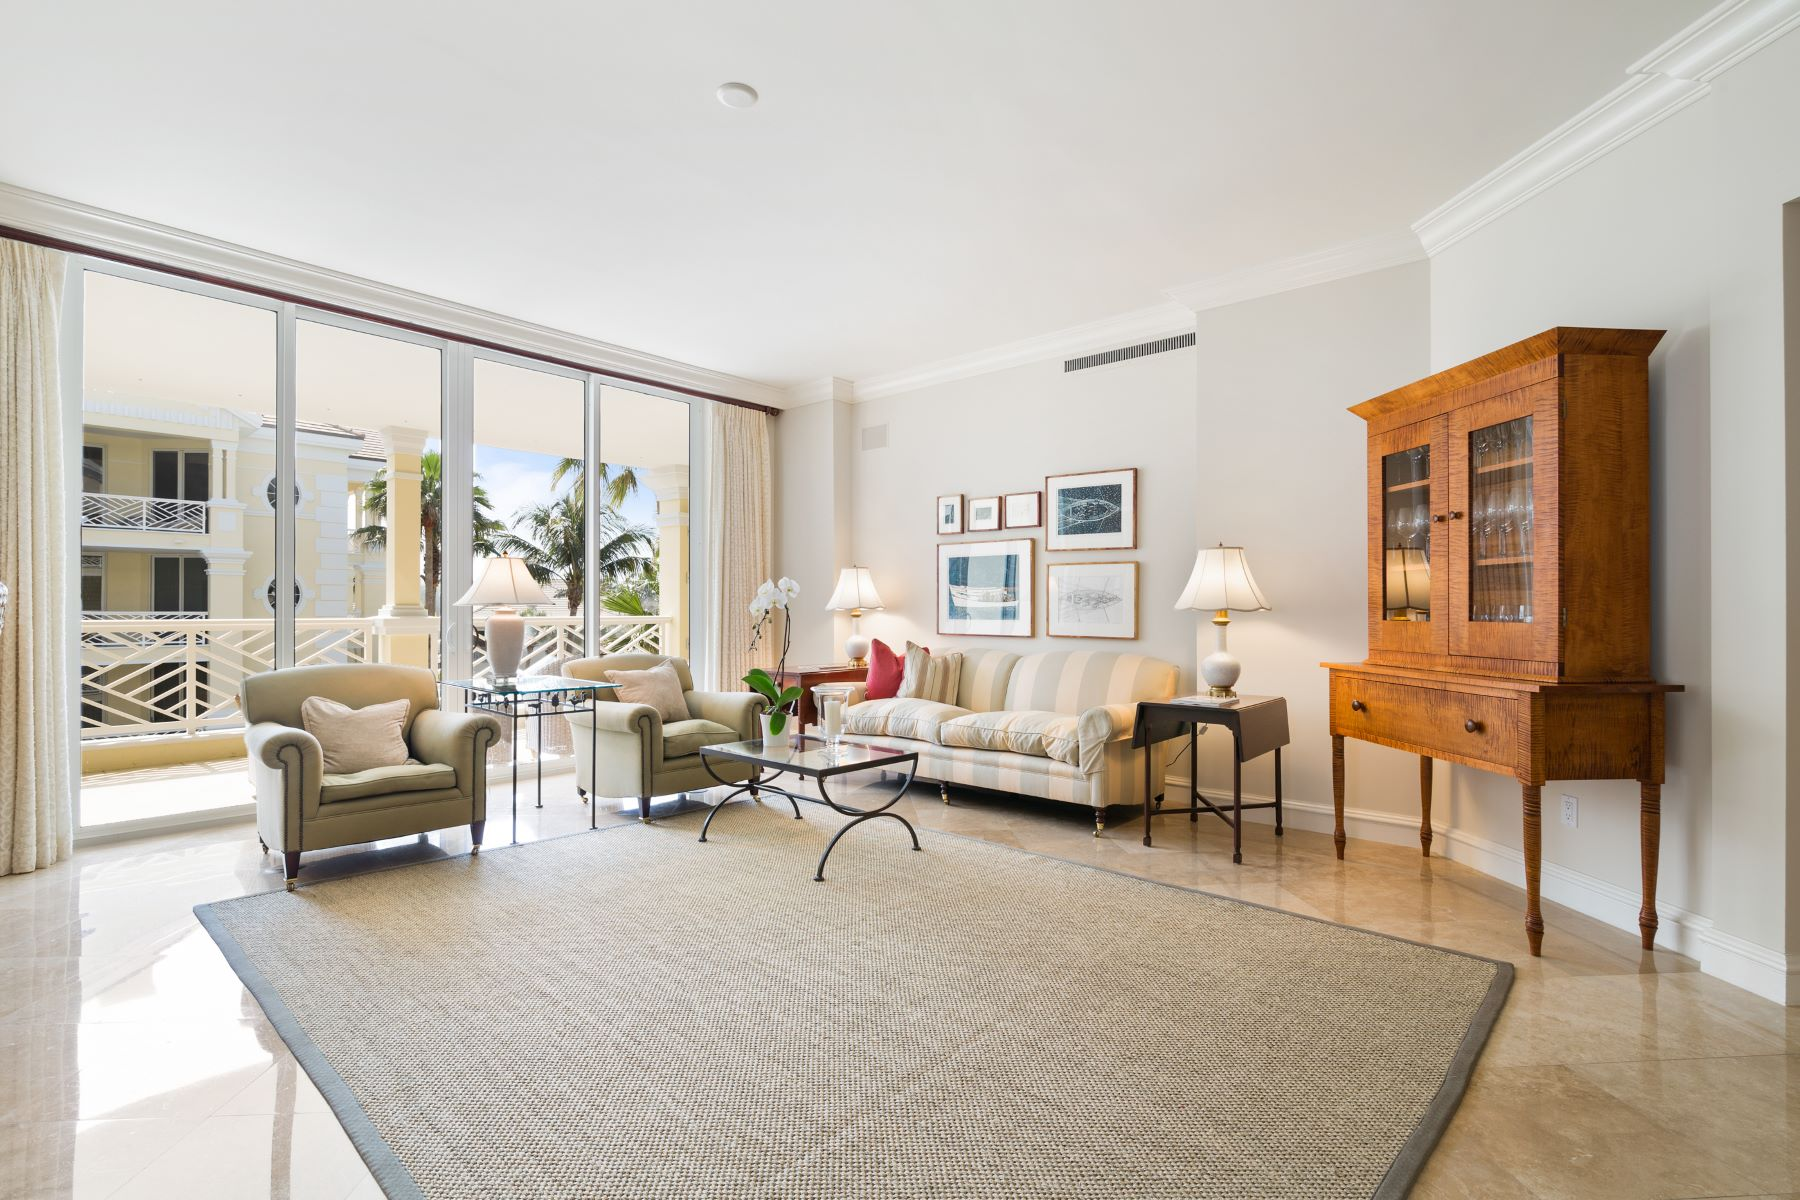 Additional photo for property listing at Luxurious Oceanfront Living 200 Beachview Drive 3S Indian River Shores, Florida 32963 United States